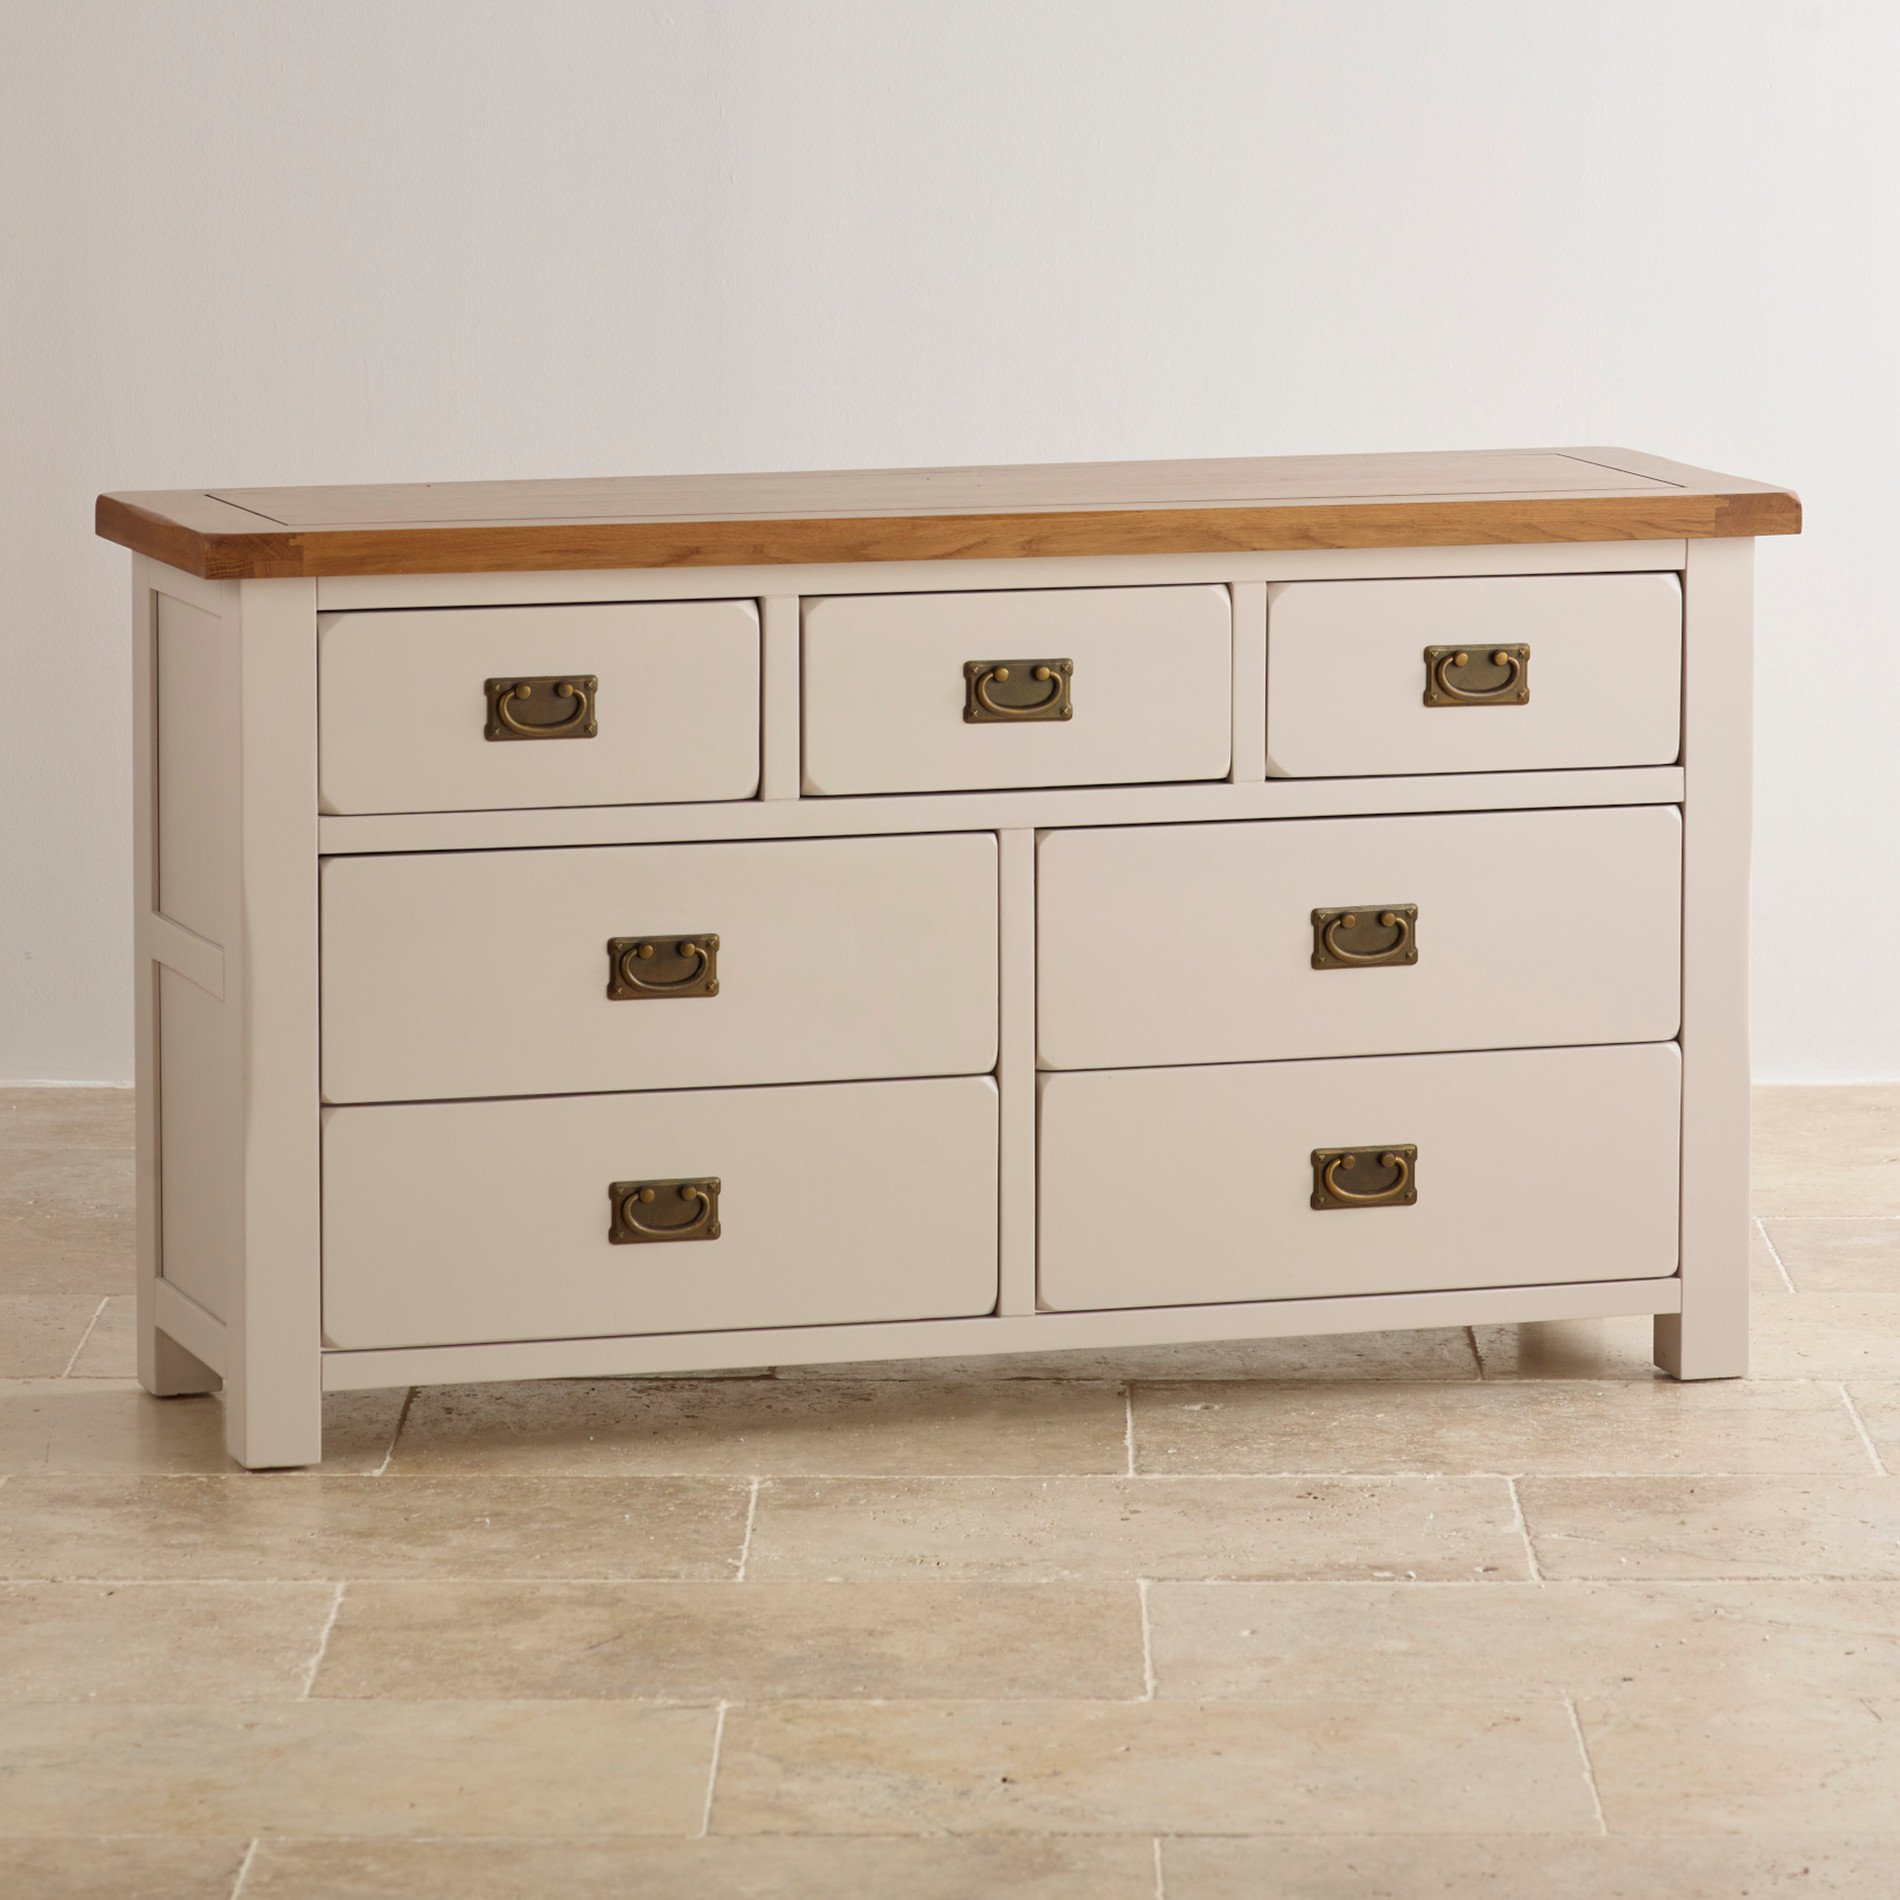 Kemble 3 4 Chest Of Drawers In Rustic Painted Solid Oak